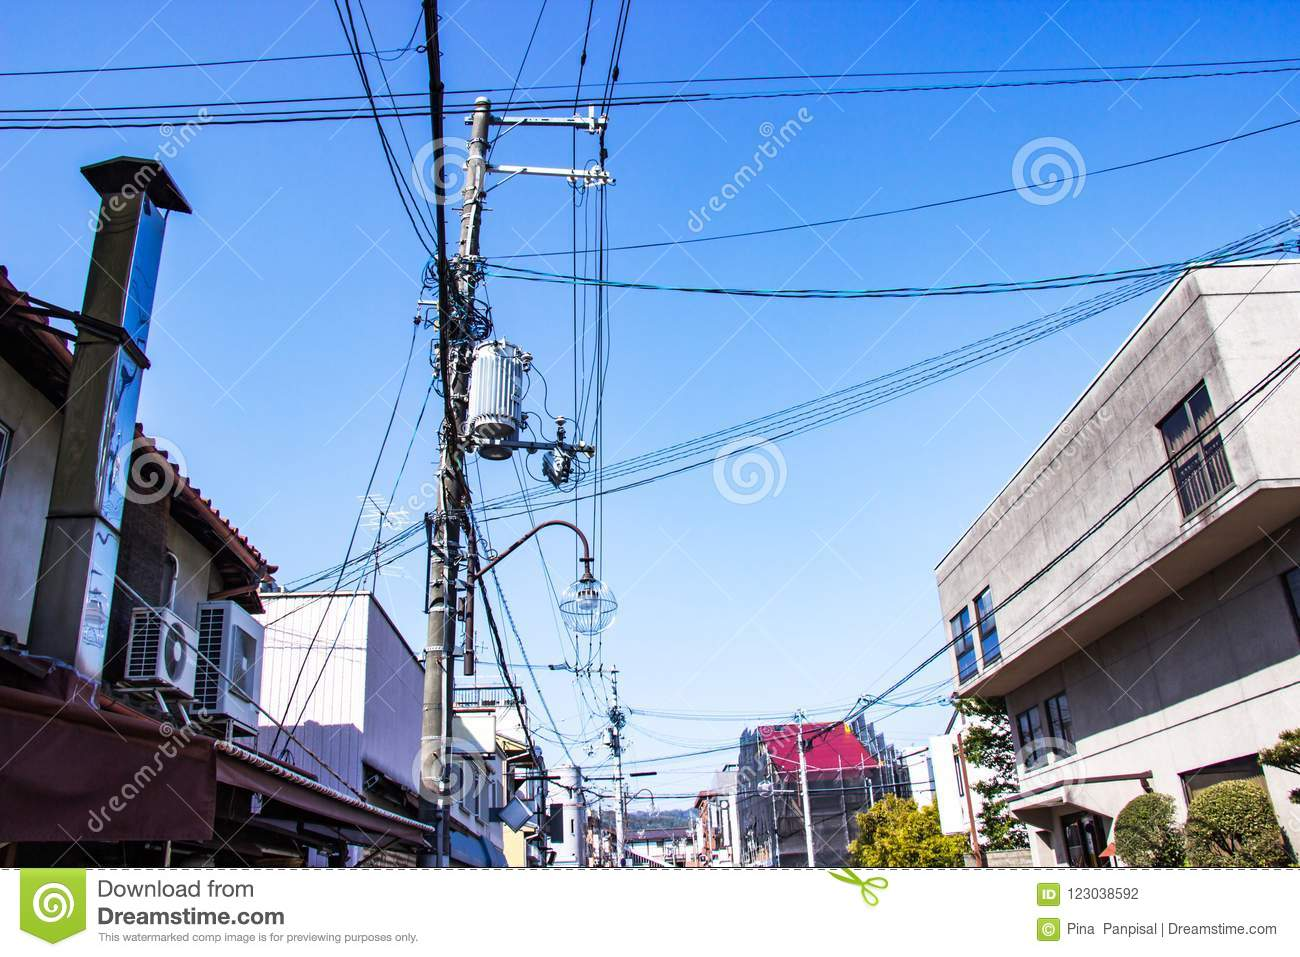 hight resolution of electric pole with wires and lamp outdoor in the streets organized wiring is neat at bright